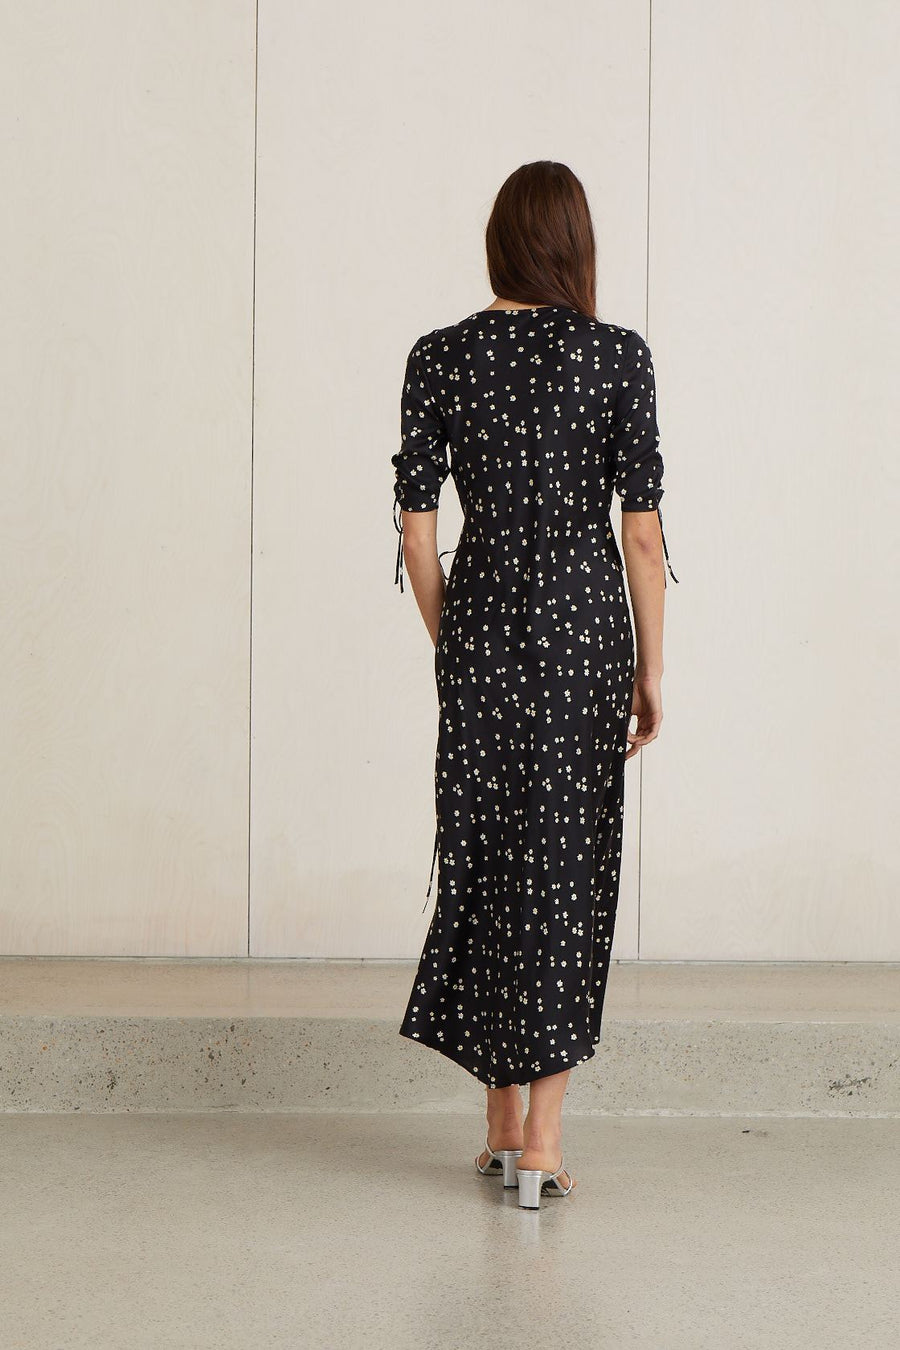 Bec and Bridge Miss Daisy Wrap Dress